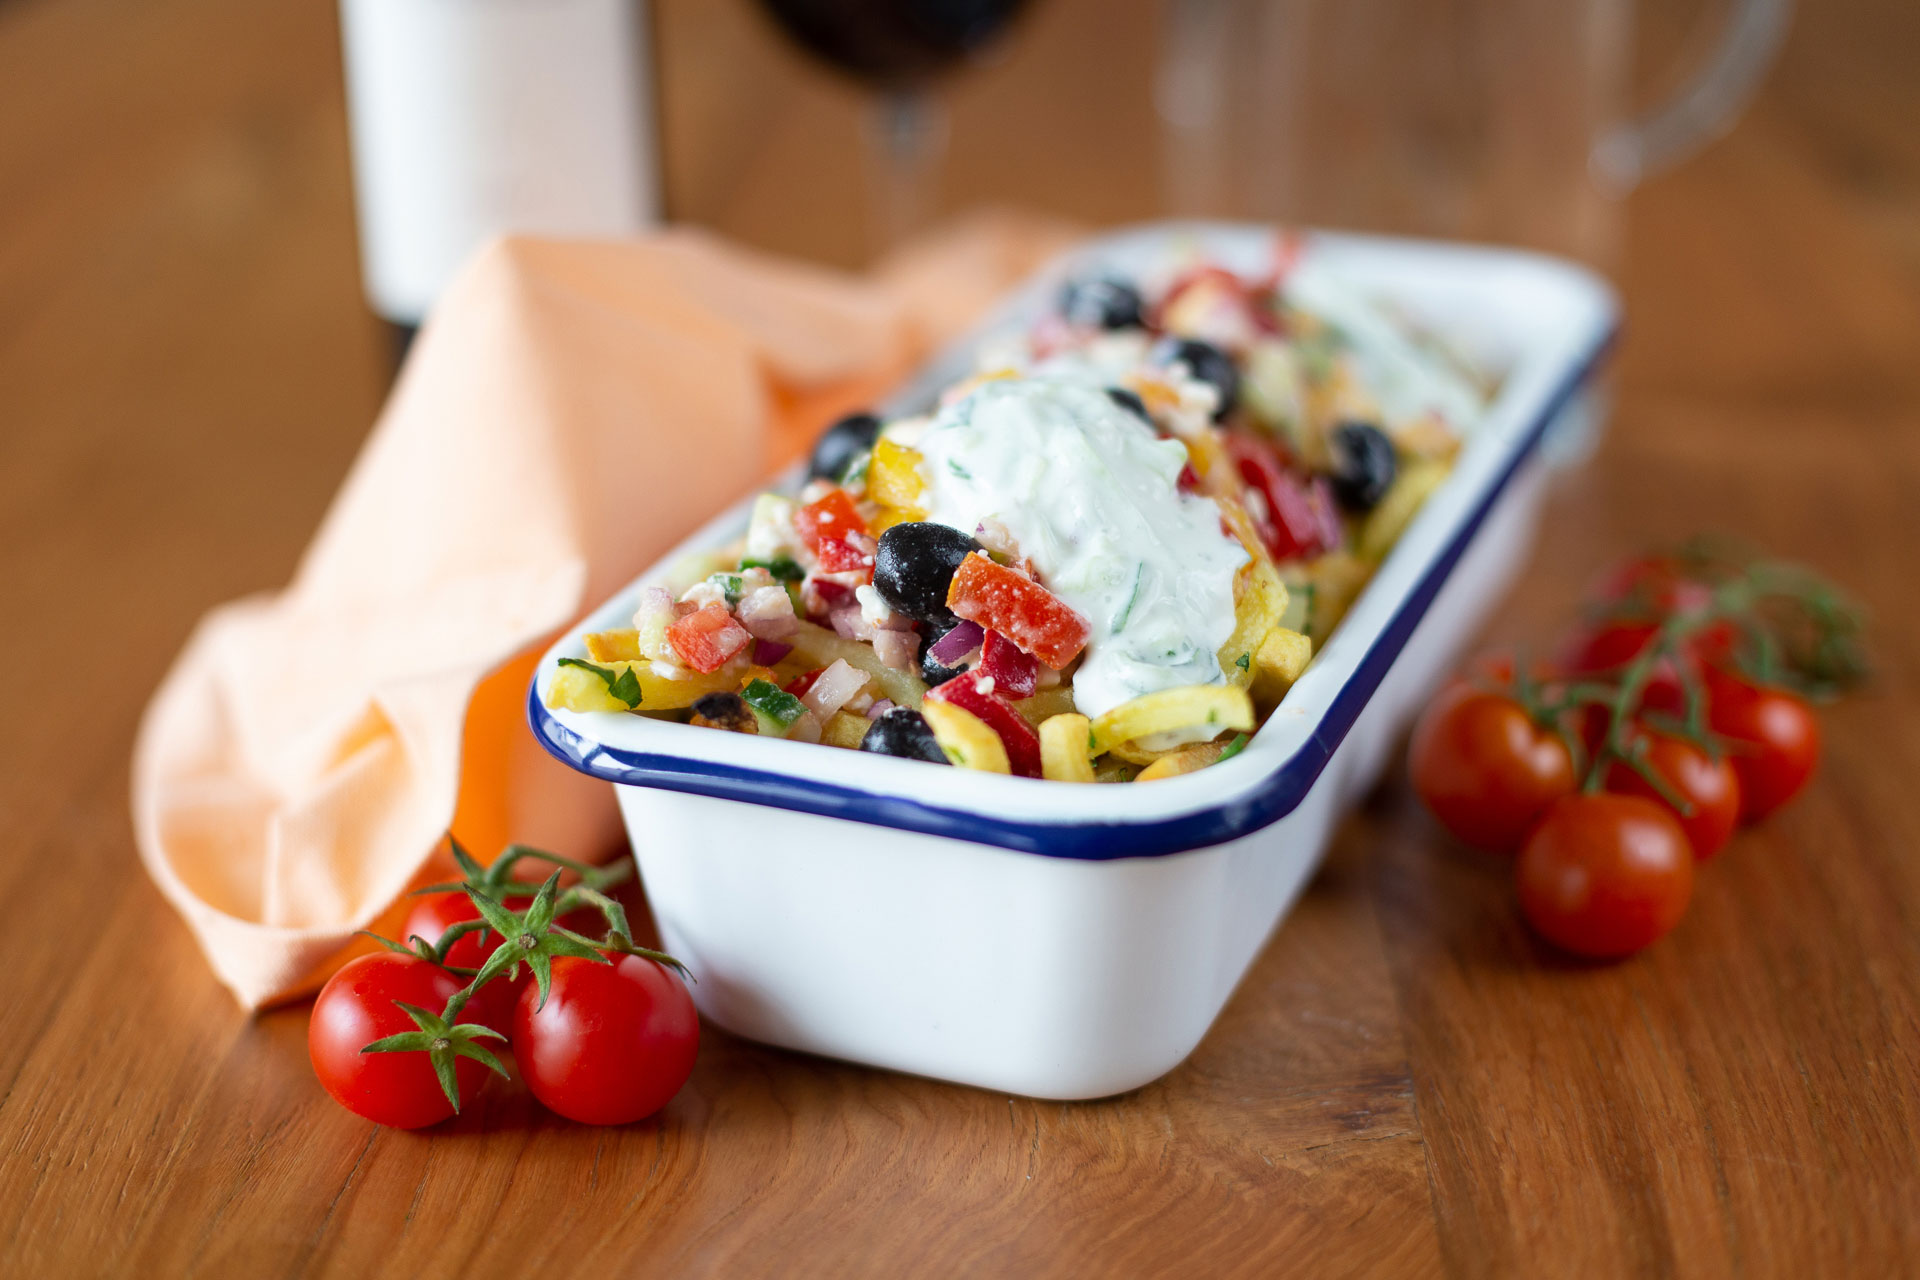 loaded-fries-greek-style-pommes-griechische-art-web